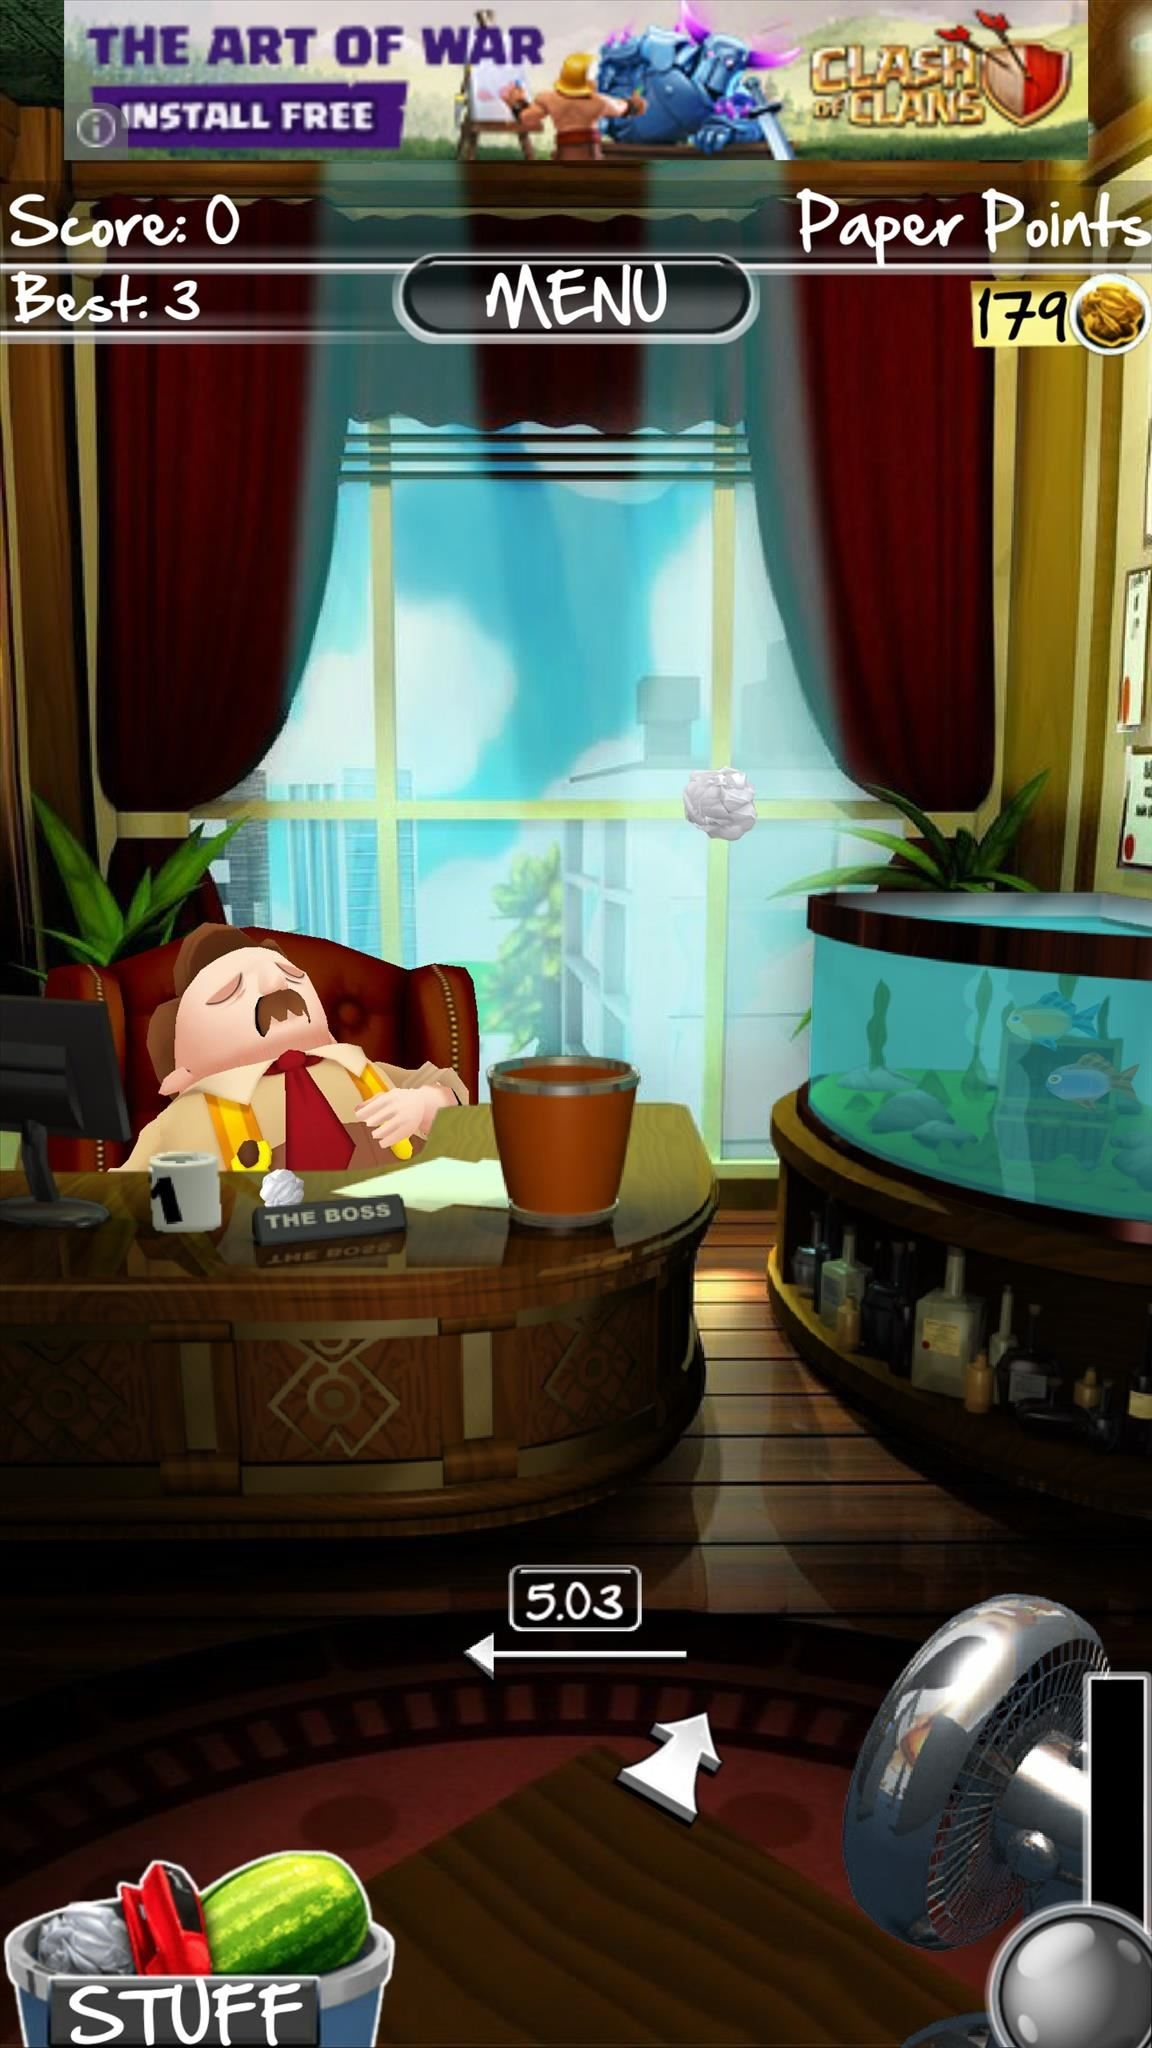 The 10 Best Games to Play on Android When You're Taking a Dump